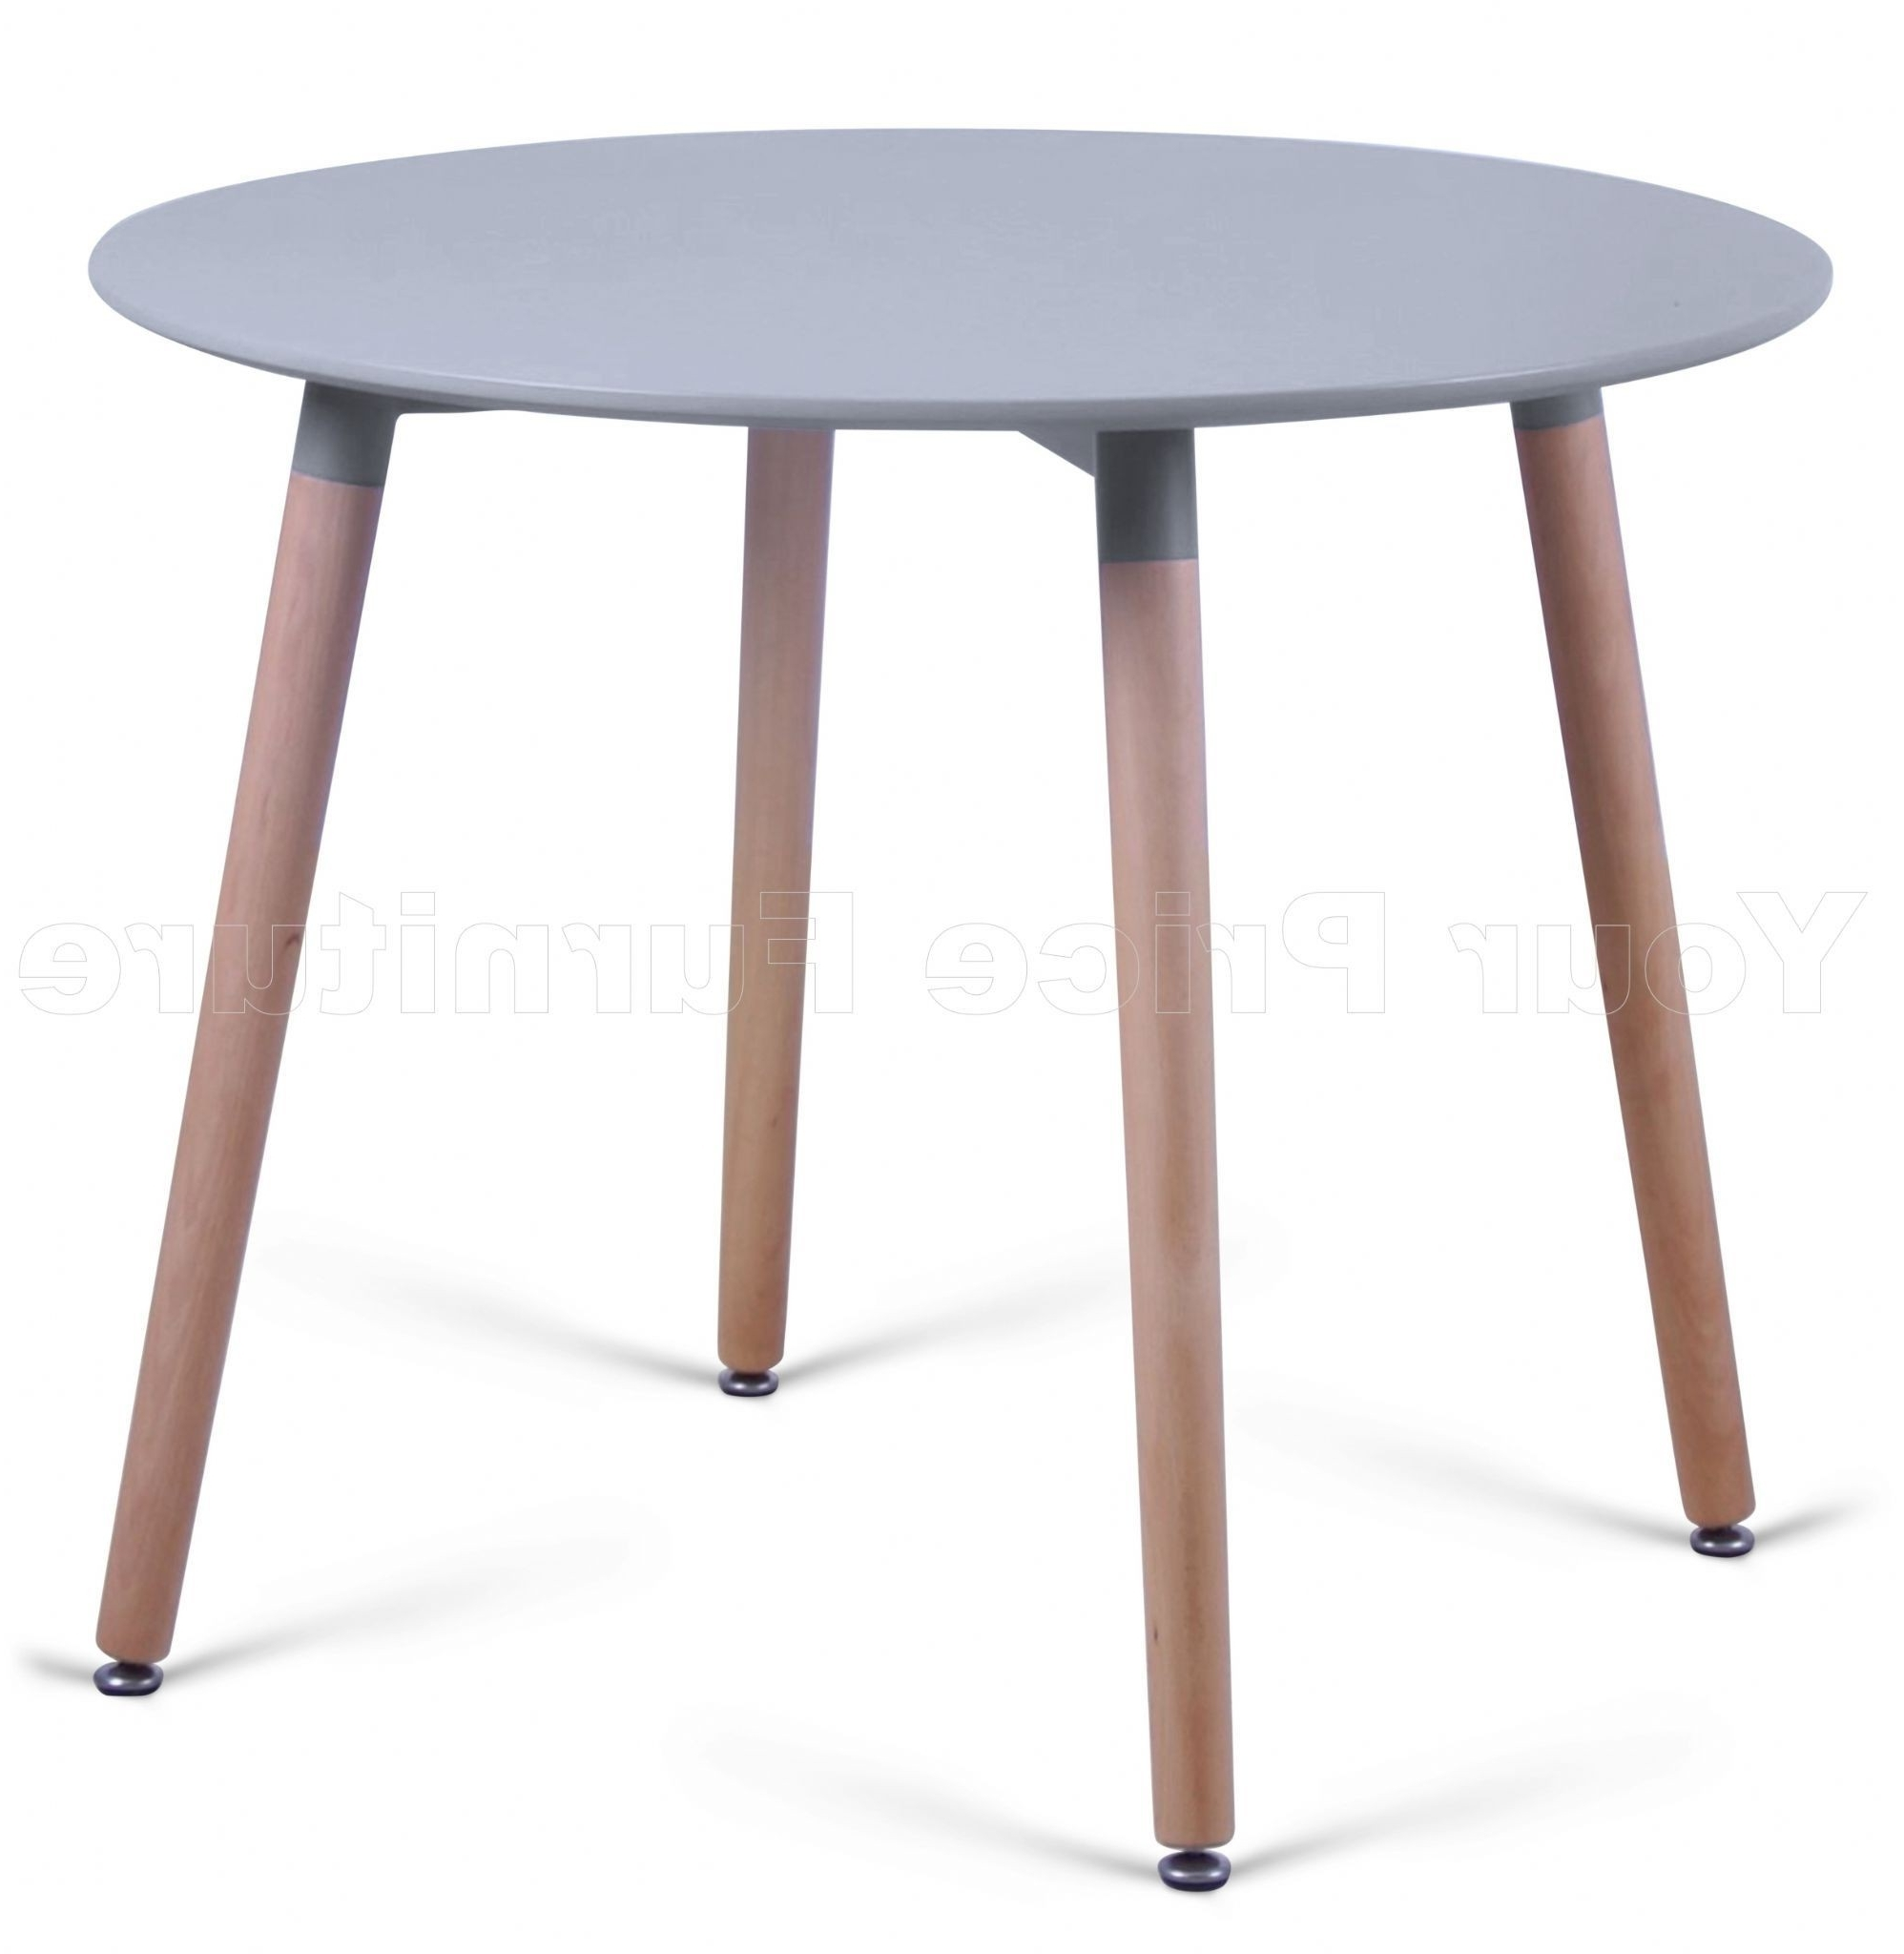 [%Round Dining Room Tables For Sale Best Of 99 [ Dining Table Round For Well Liked Cheap Round Dining Tables|Cheap Round Dining Tables Within Favorite Round Dining Room Tables For Sale Best Of 99 [ Dining Table Round|Favorite Cheap Round Dining Tables Intended For Round Dining Room Tables For Sale Best Of 99 [ Dining Table Round|Preferred Round Dining Room Tables For Sale Best Of 99 [ Dining Table Round Regarding Cheap Round Dining Tables%] (View 1 of 25)